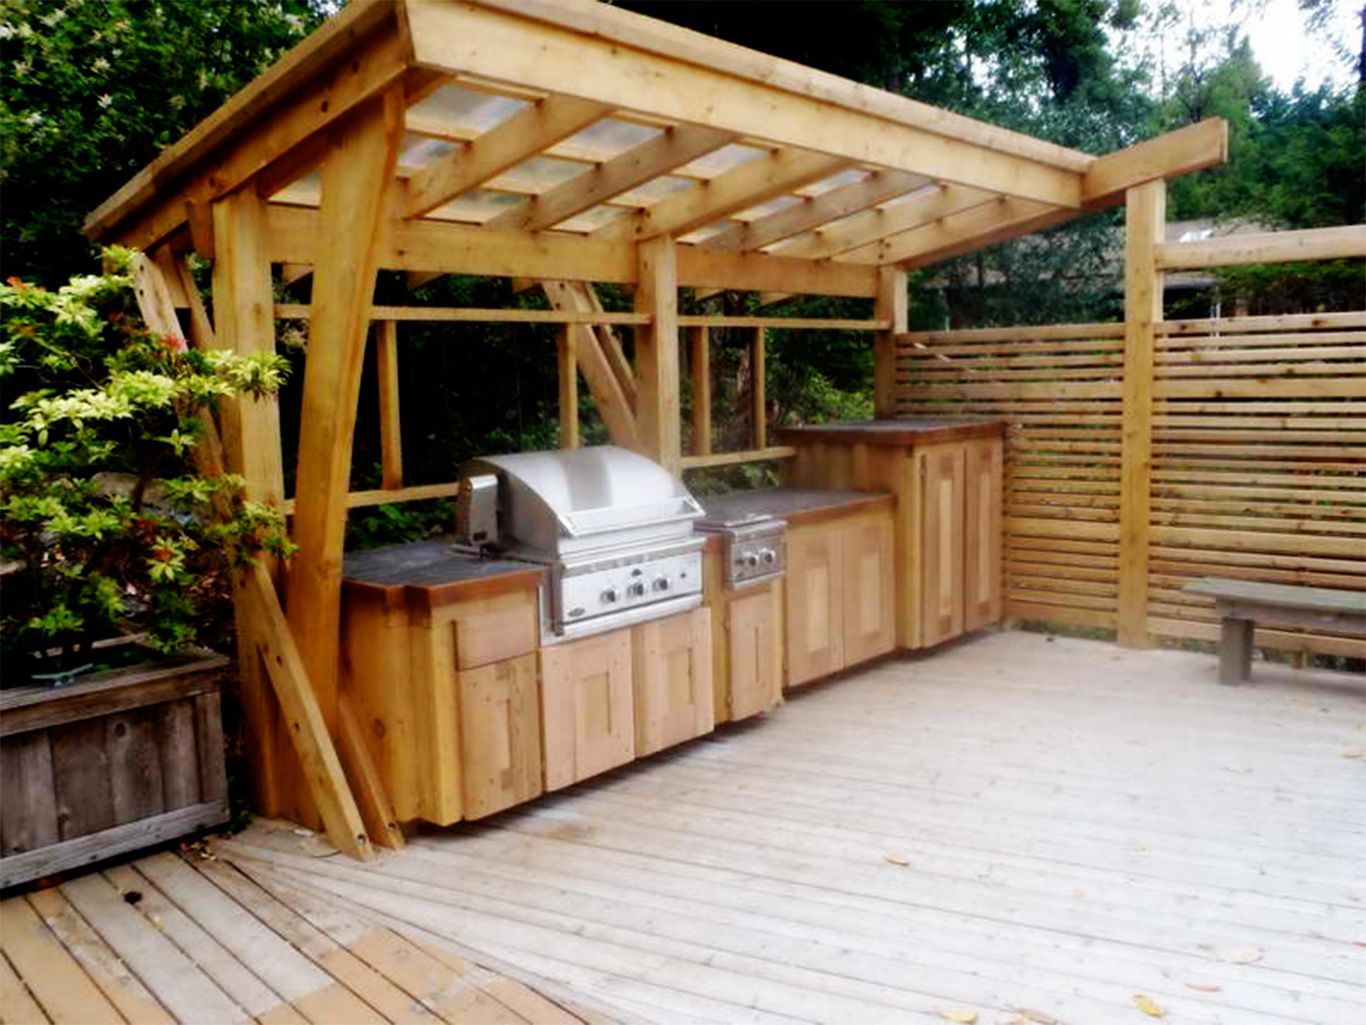 Uncategorized Outdoor Kitchens Designs outdoor roof ideas kitchen design gazebo designs innovative outdoor